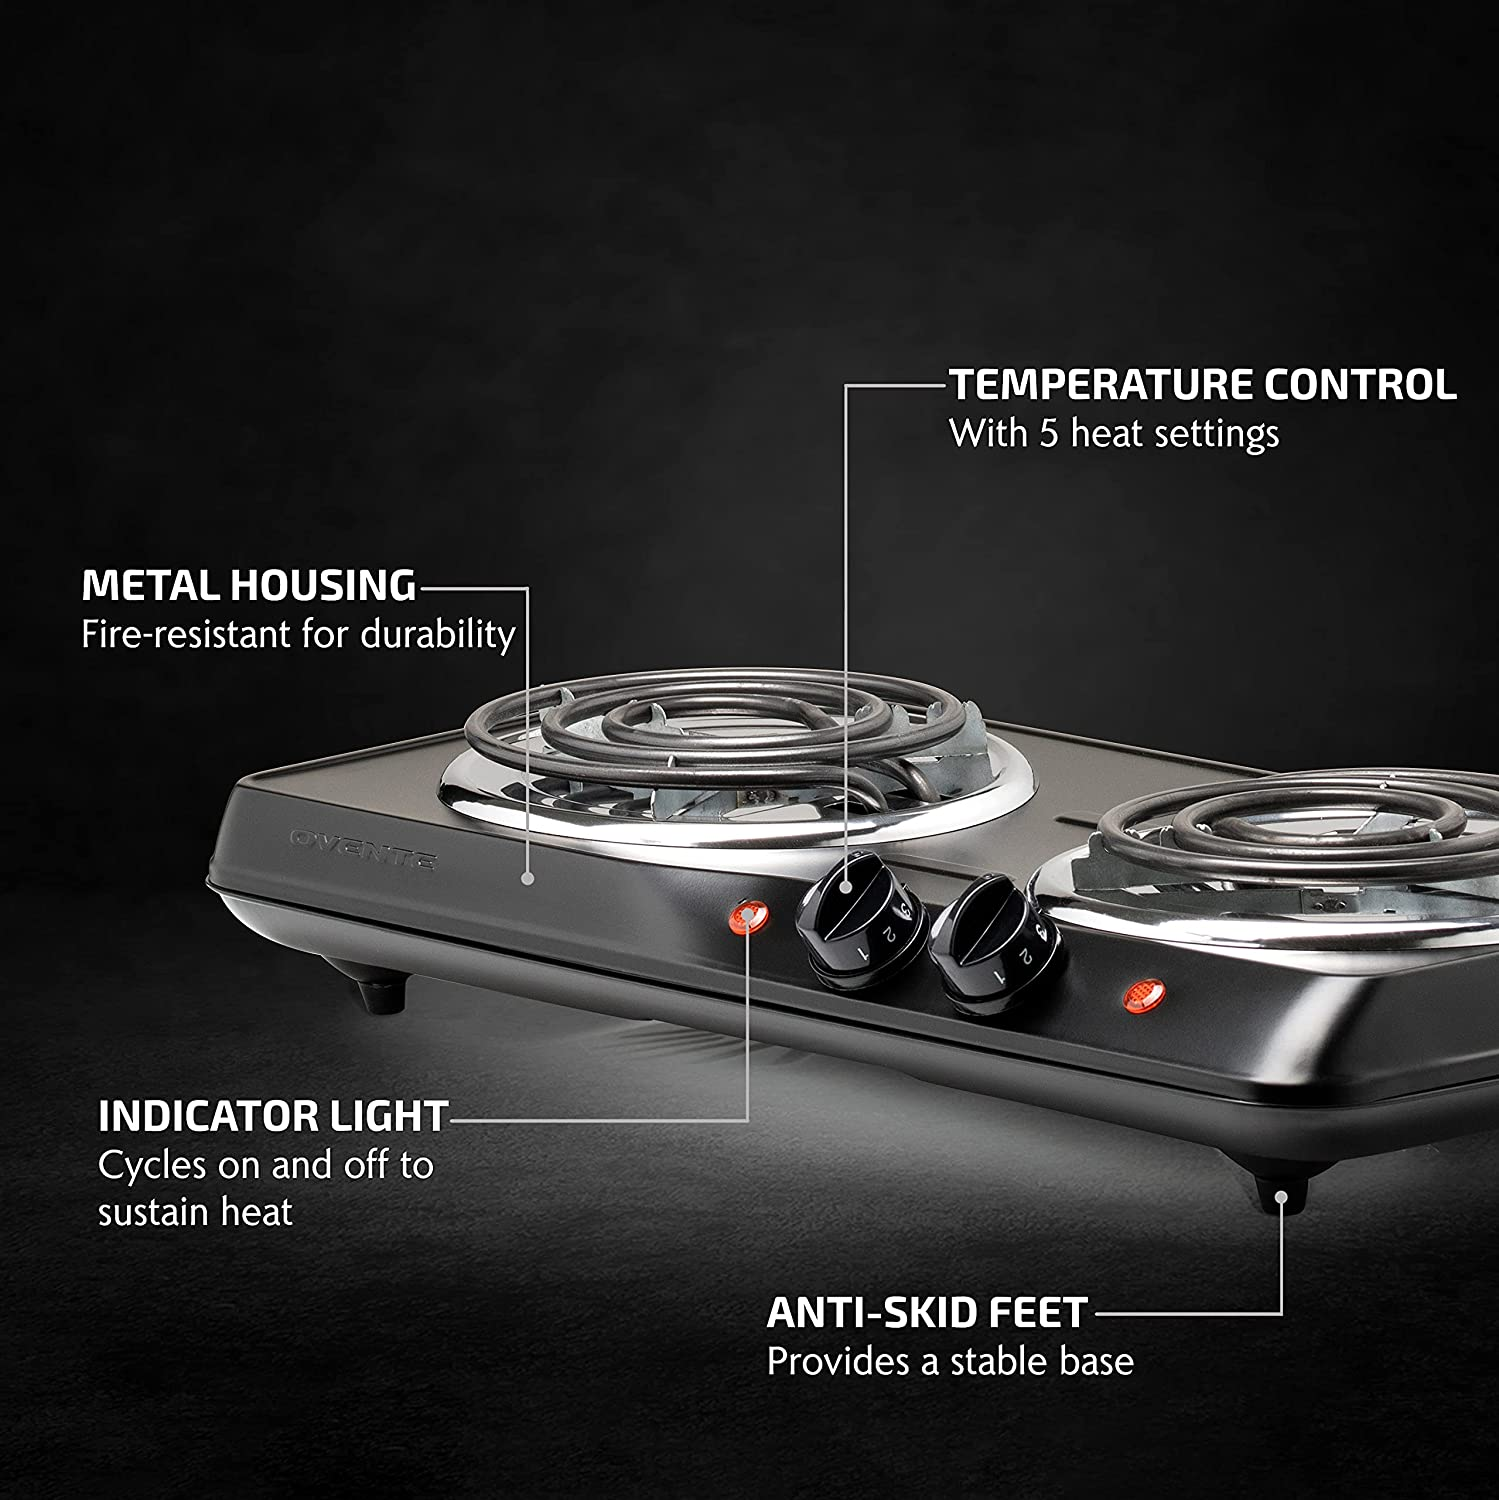 Ovente Electric Double Coil Burner 5.7 & 6 Inch Hot Plate Cooktop with Dual 5 Level Temperature Control & Easy Clean Stainless Steel Base, 1700W Portable Stove for Home Dorm Office, Black BGC102B : Appliances